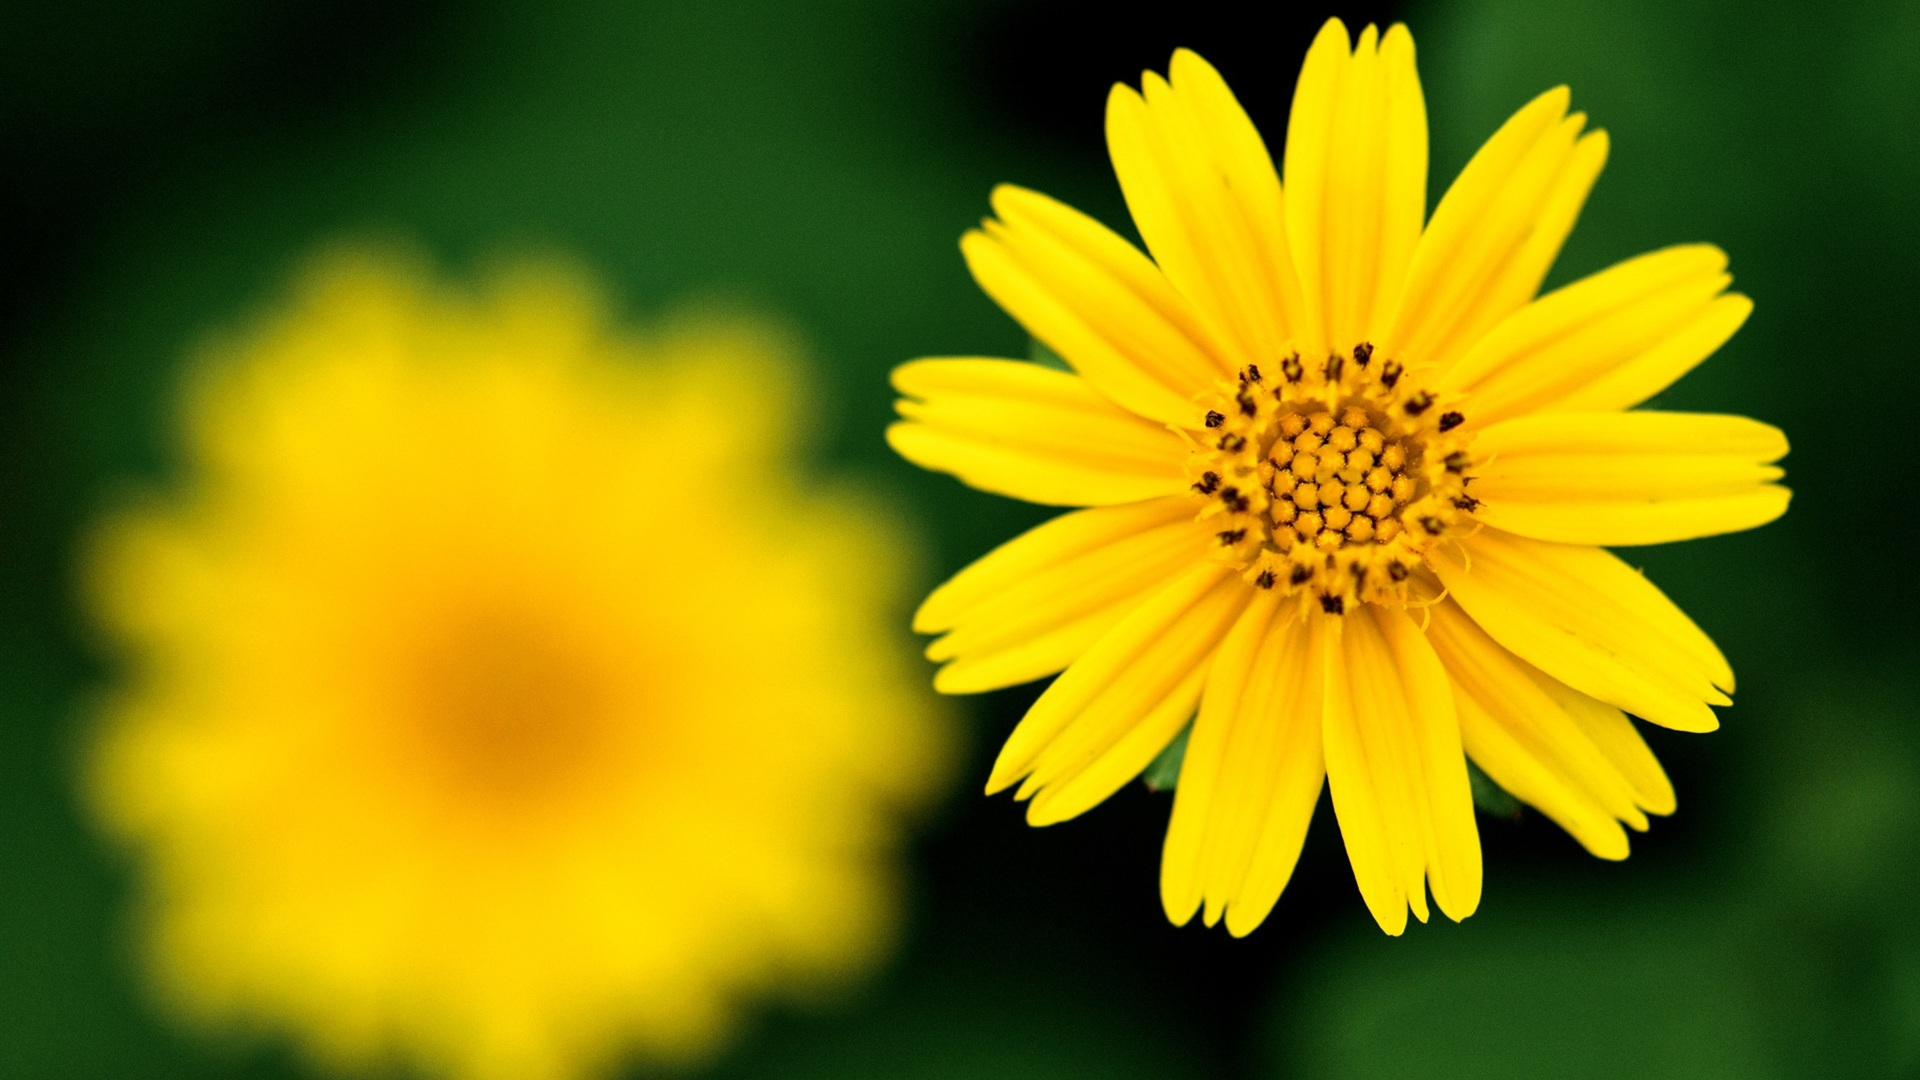 Wallpapers for Gt Yellow Flower Wallpaper 1920x1080px